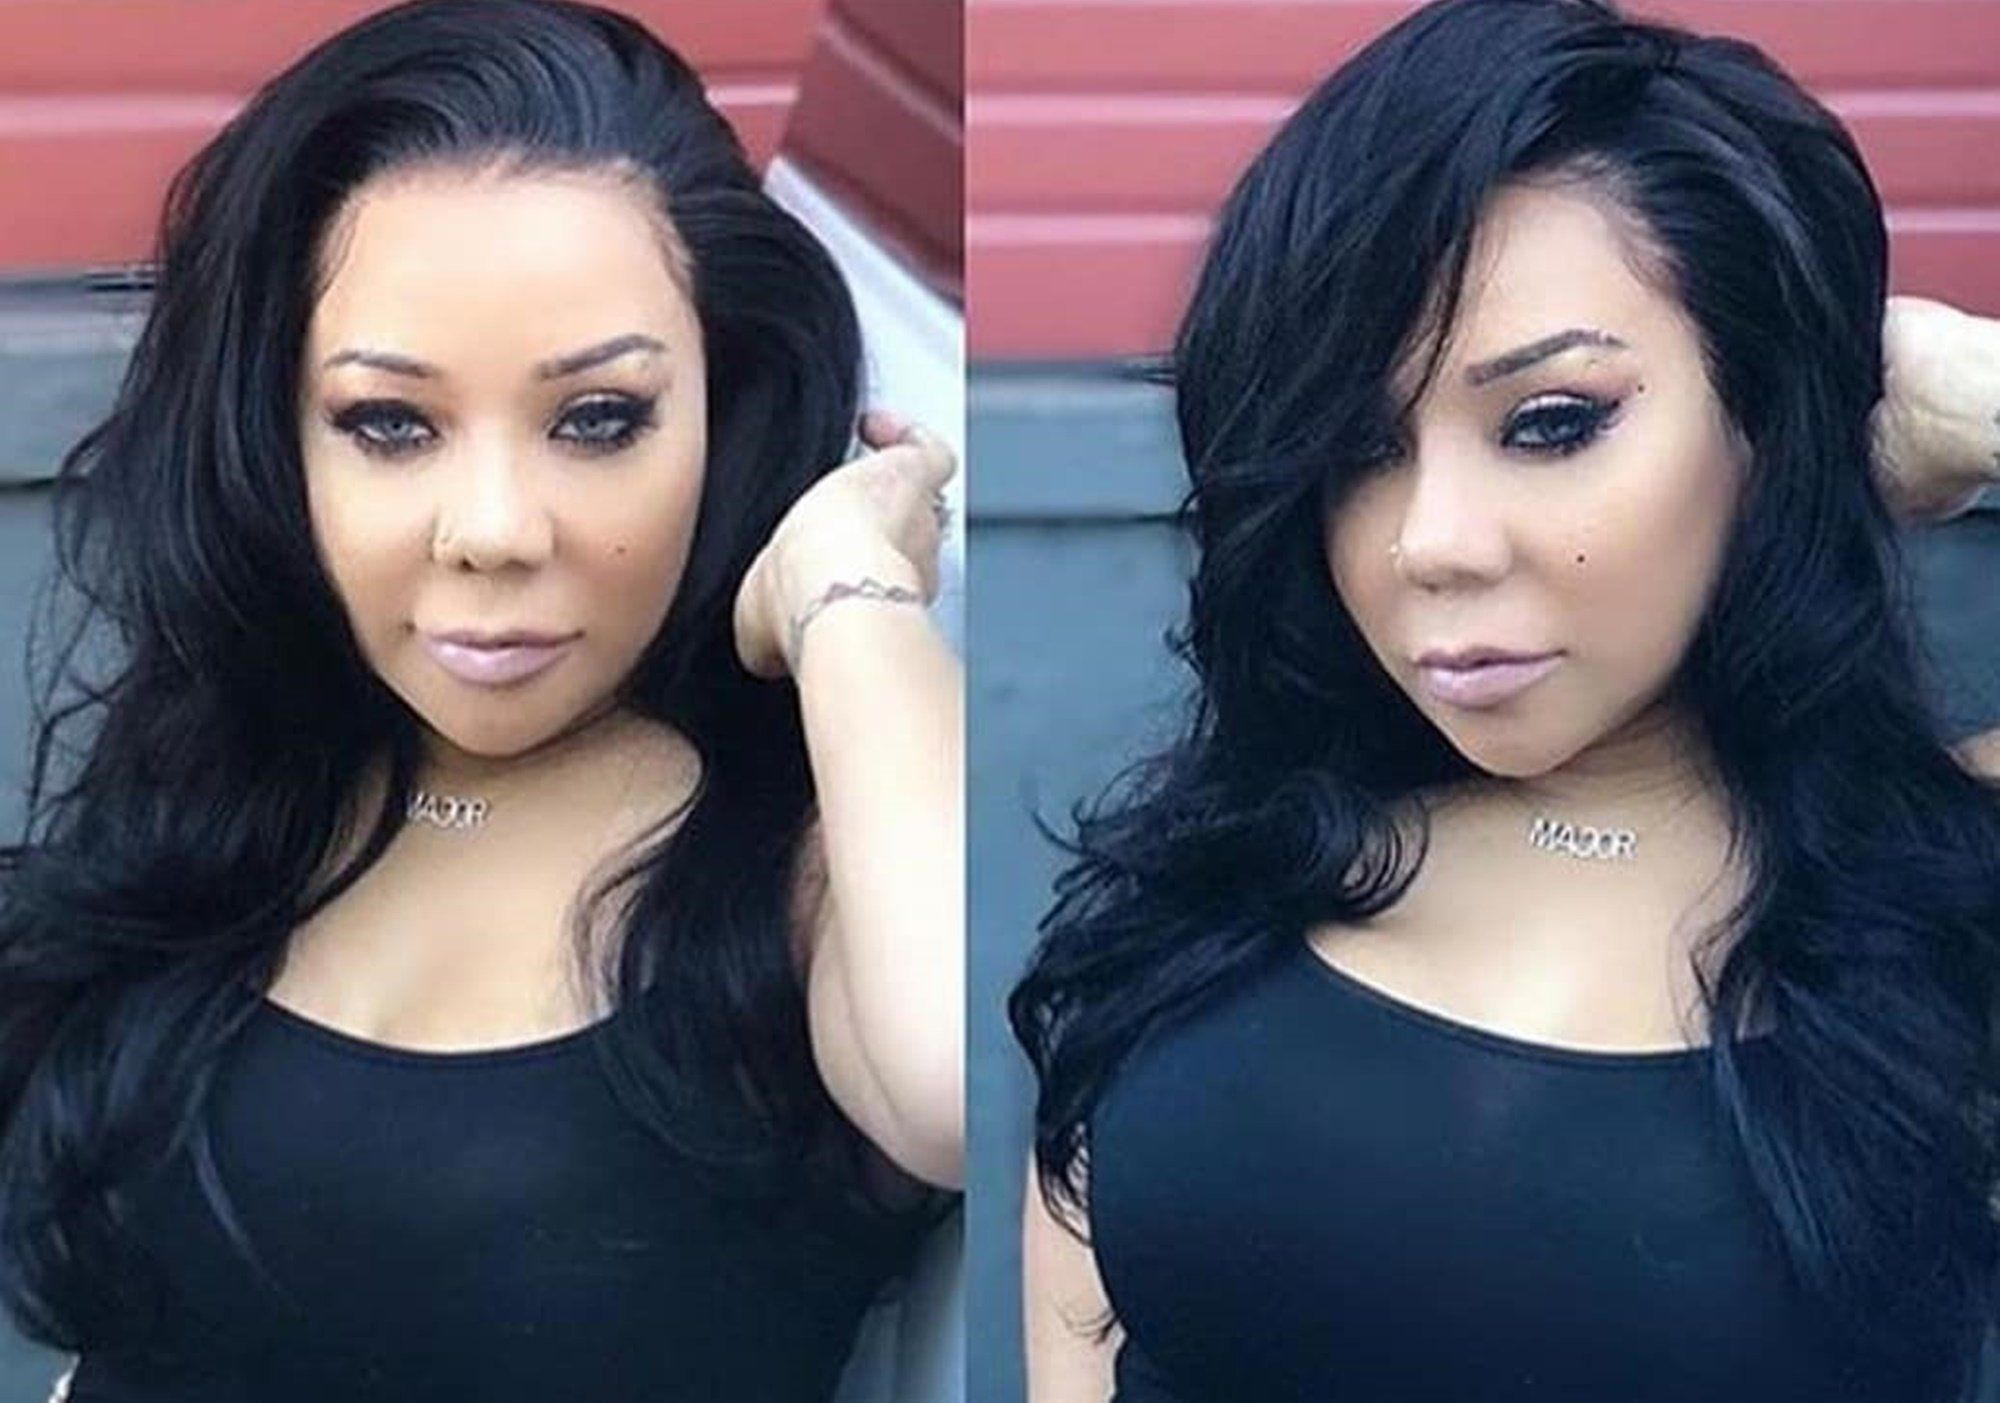 Tiny Harris' Latest Photos have Fans Saying She Stopped Aging - Check Them Out Here